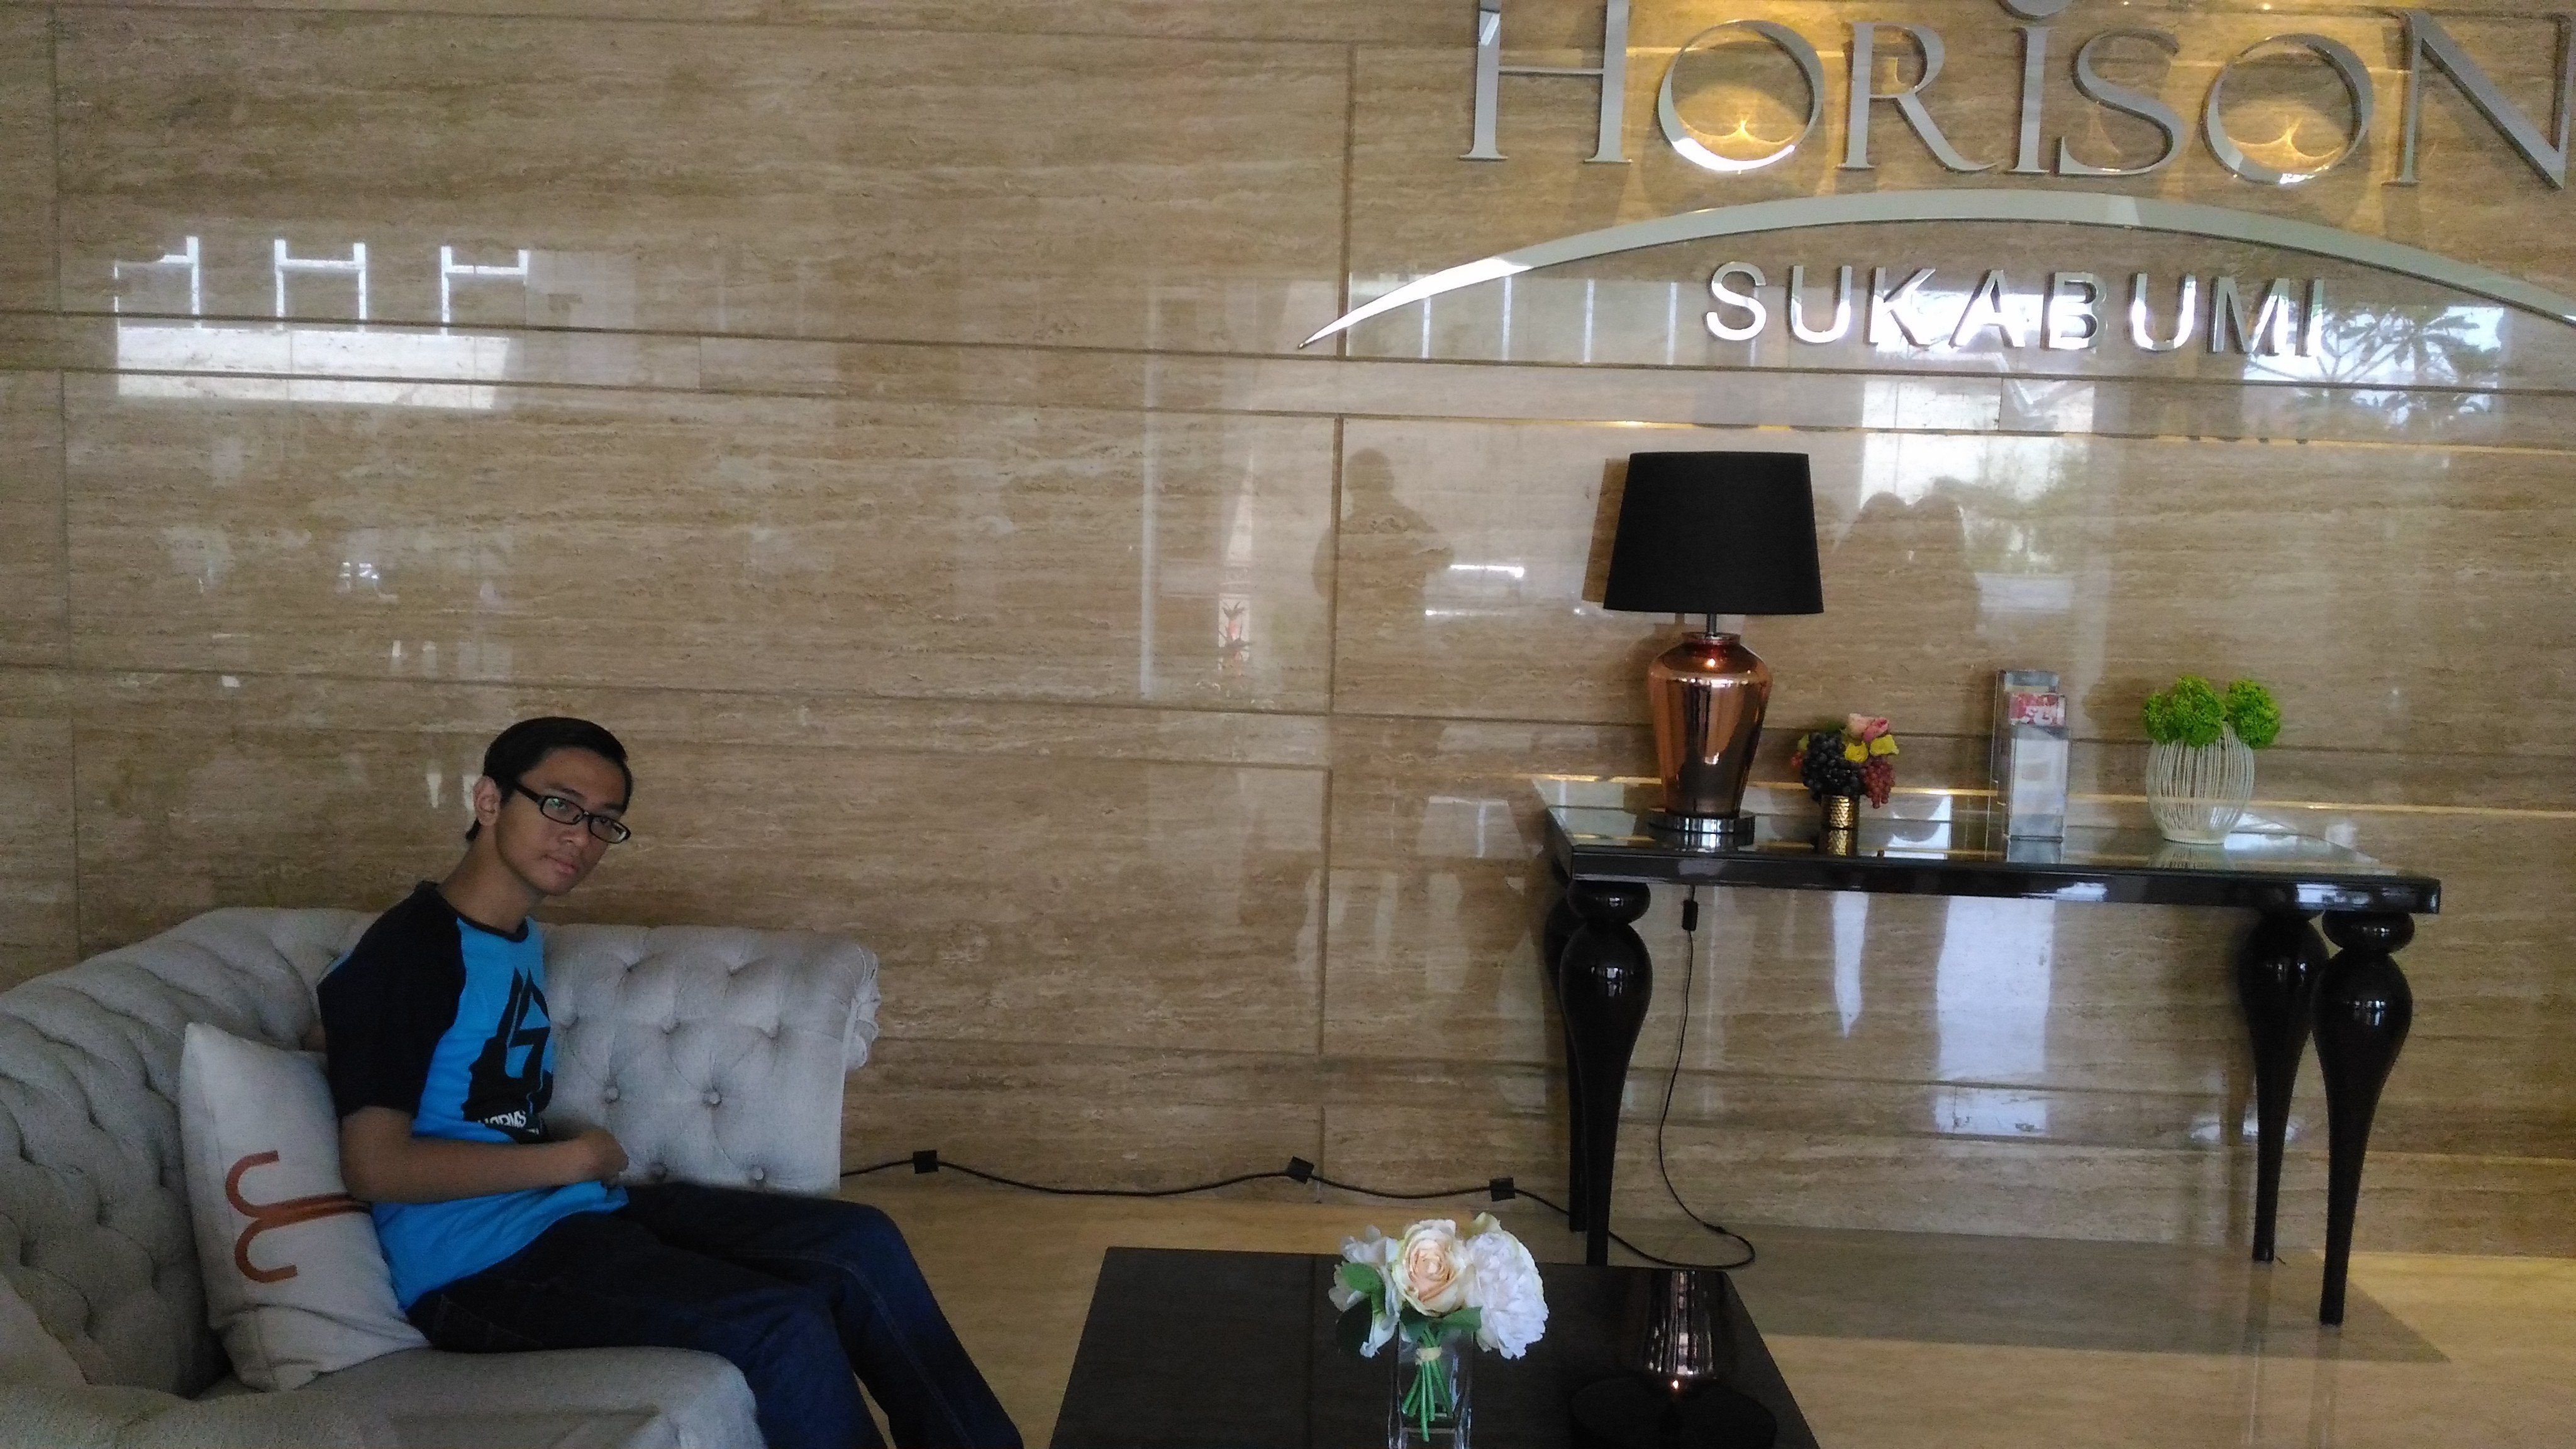 Horison hotel sukabumi updated 2017 prices reviews for Balcony hotel sukabumi